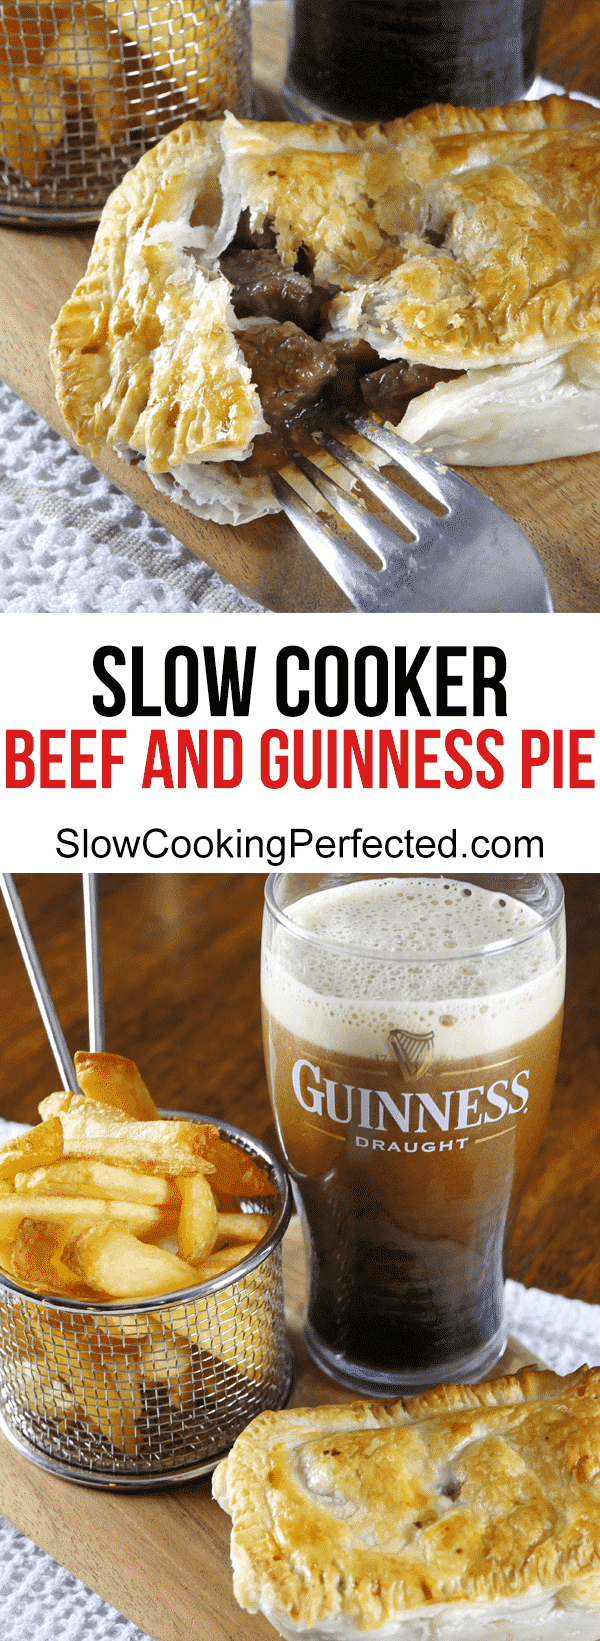 Slow Cooker Beef and Guinness Pie | Recipe | Beef ...